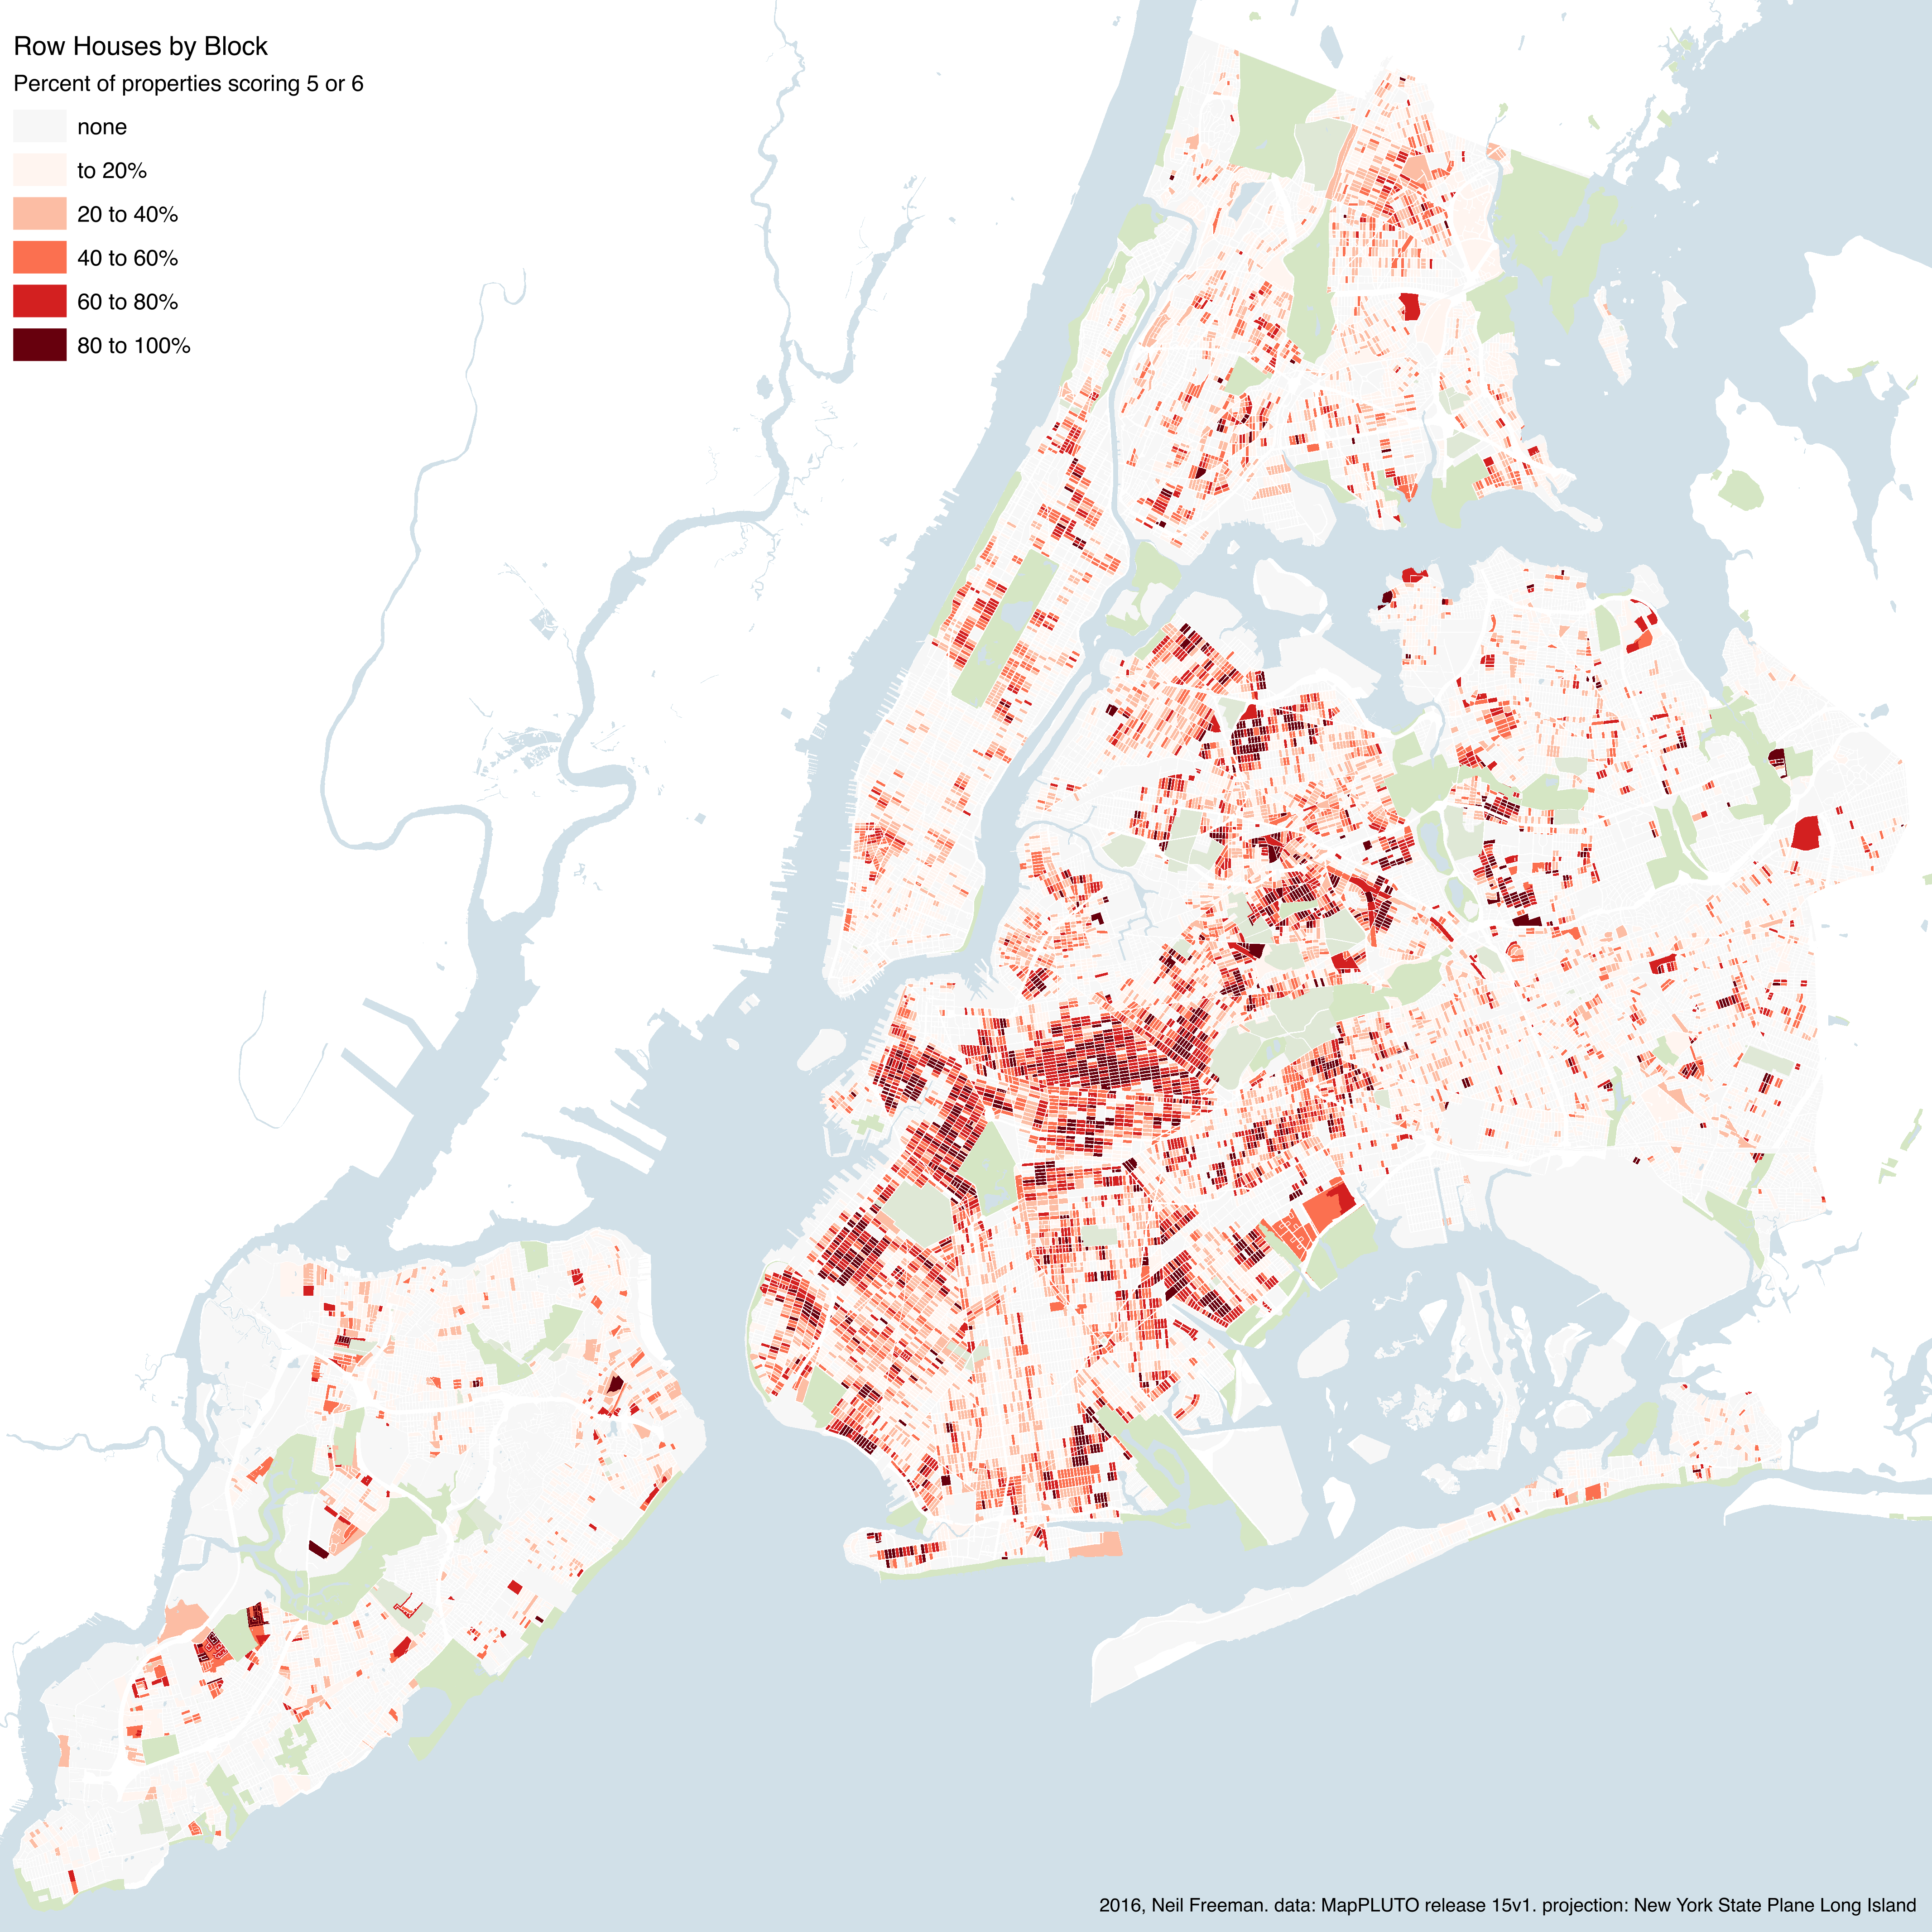 The concentration of row houses across New York City, block by block | Graphic by Neil Freeman, from MapPLUTO data